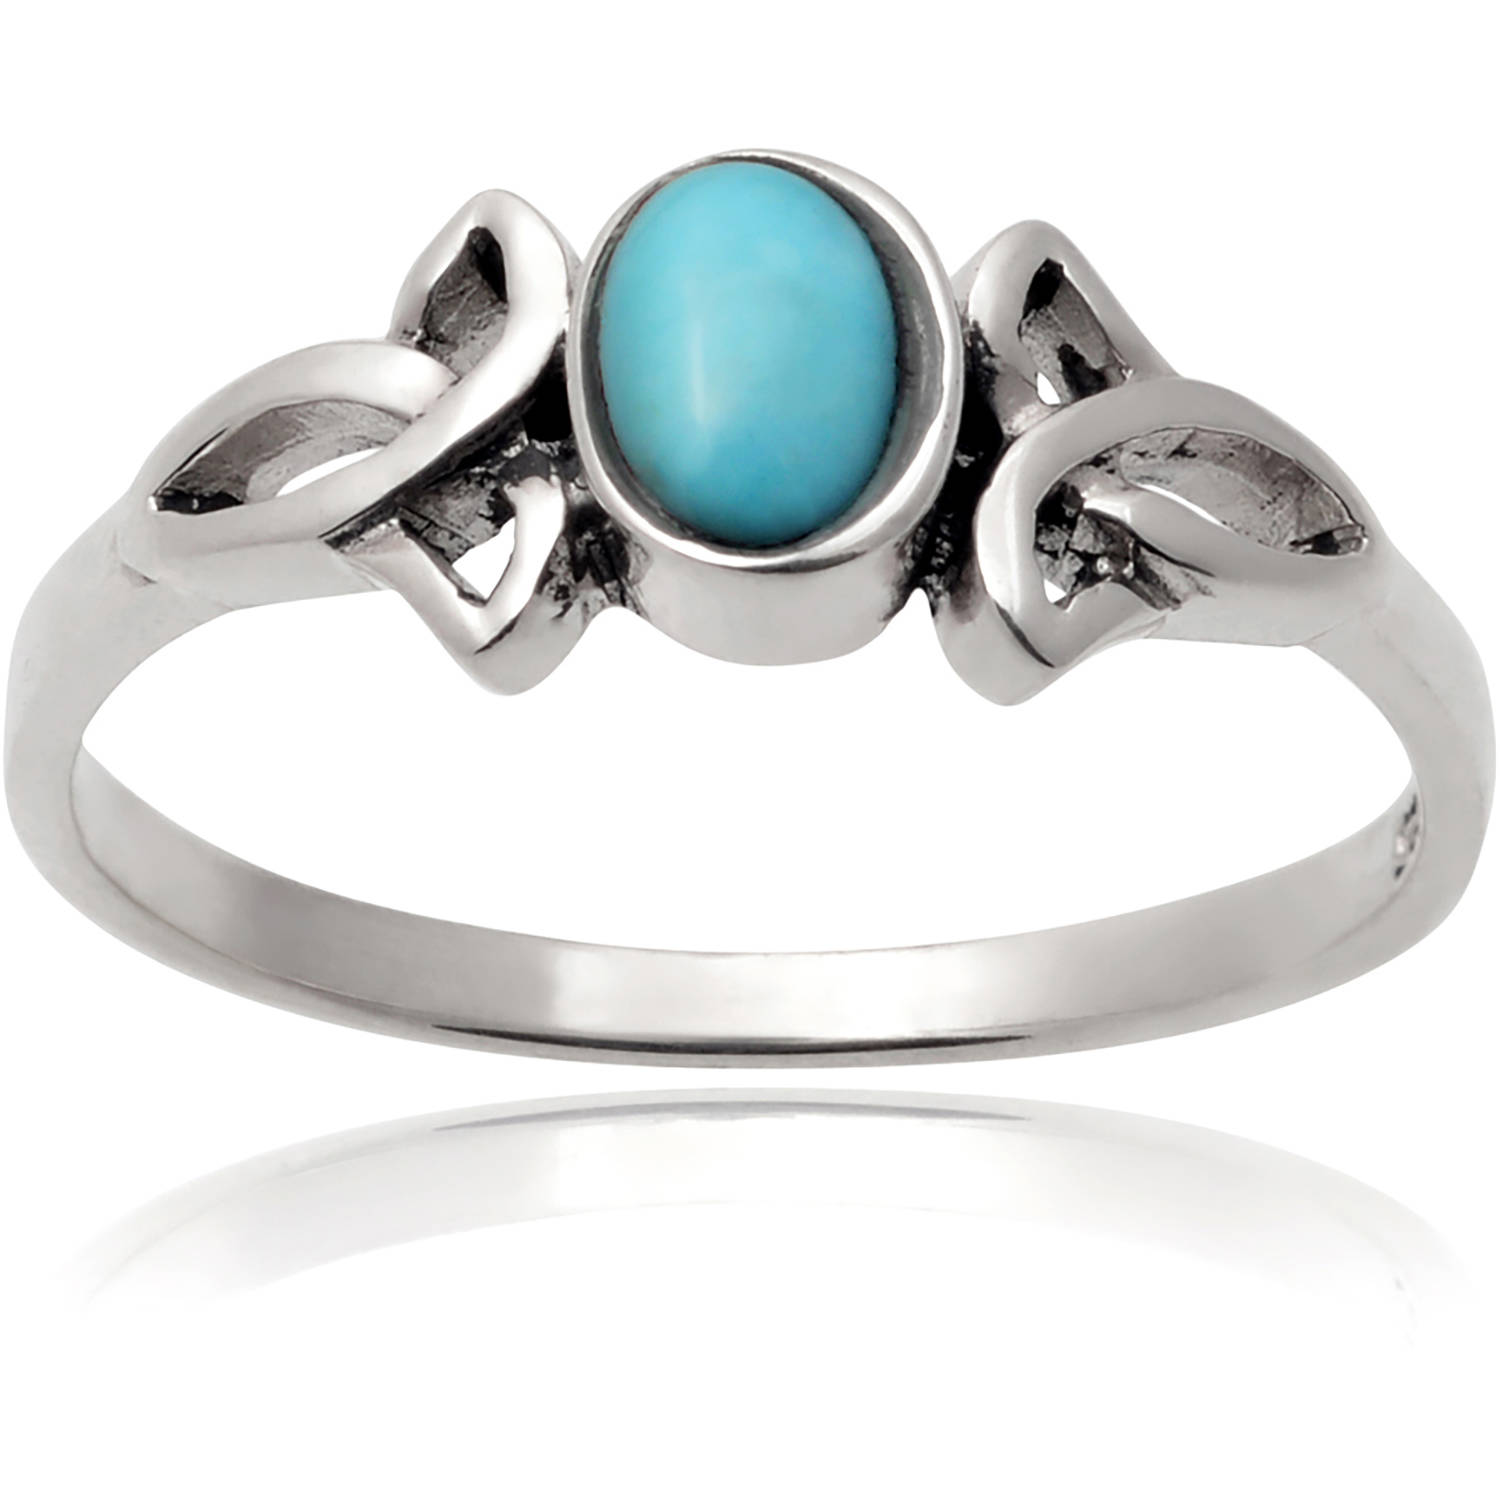 Brinley Co. Women's Turquoise Sterling Silver Celtic Knot Fashion Ring, Turquoise